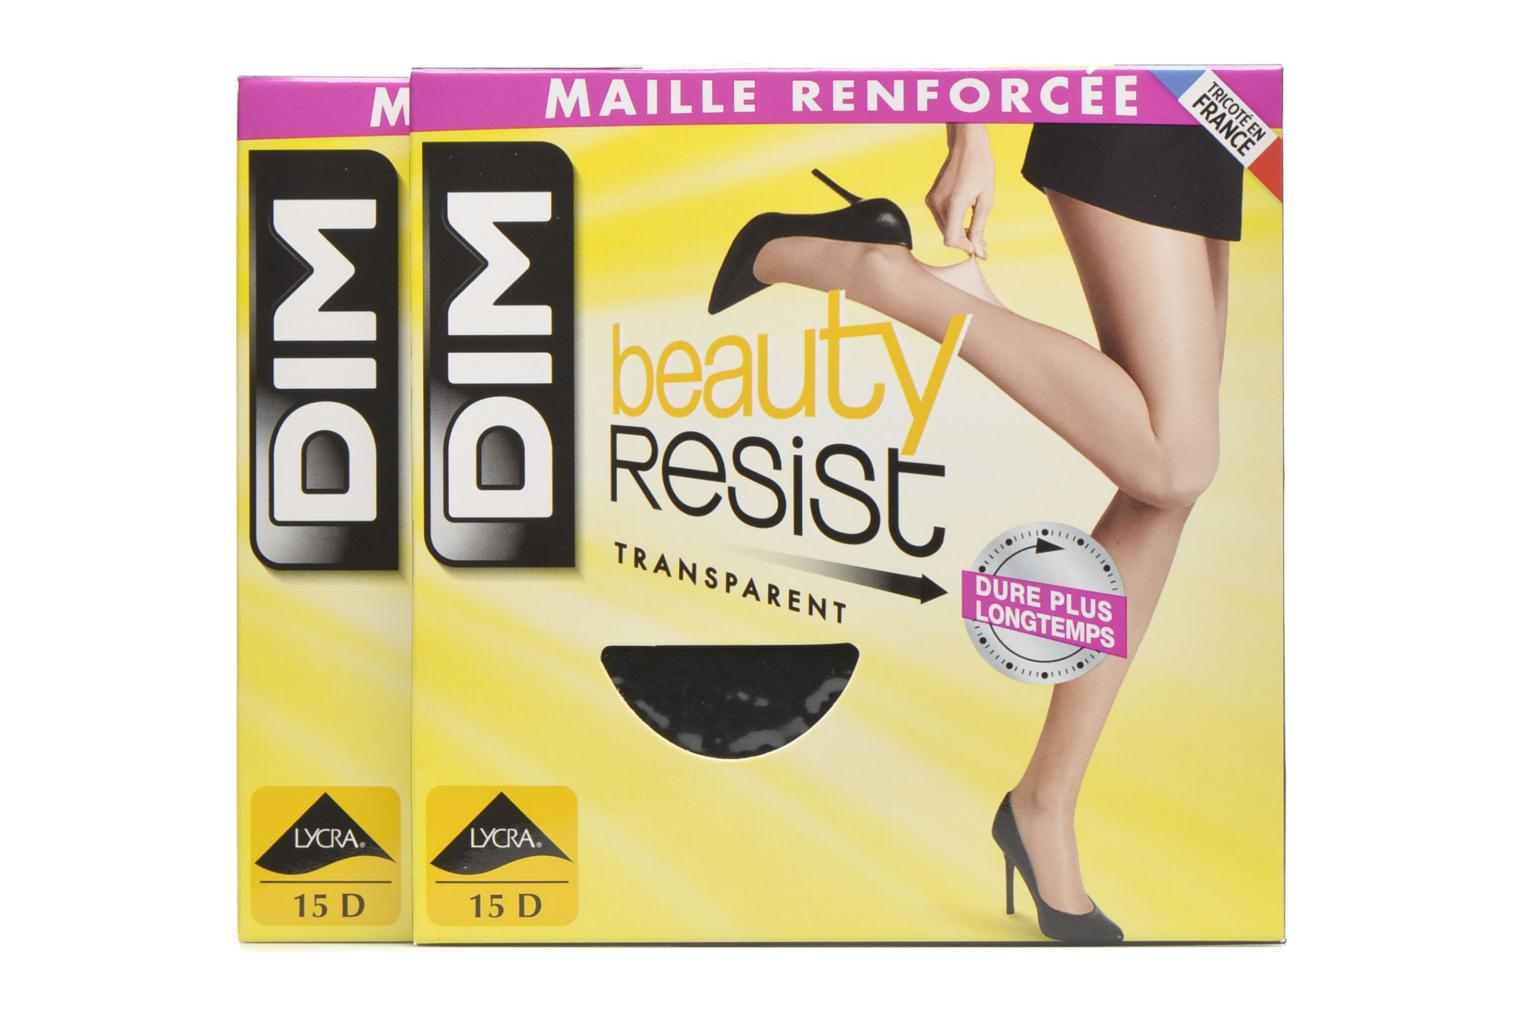 Collant Beauty Resist transparant Pack de 2 0HZ NOIR